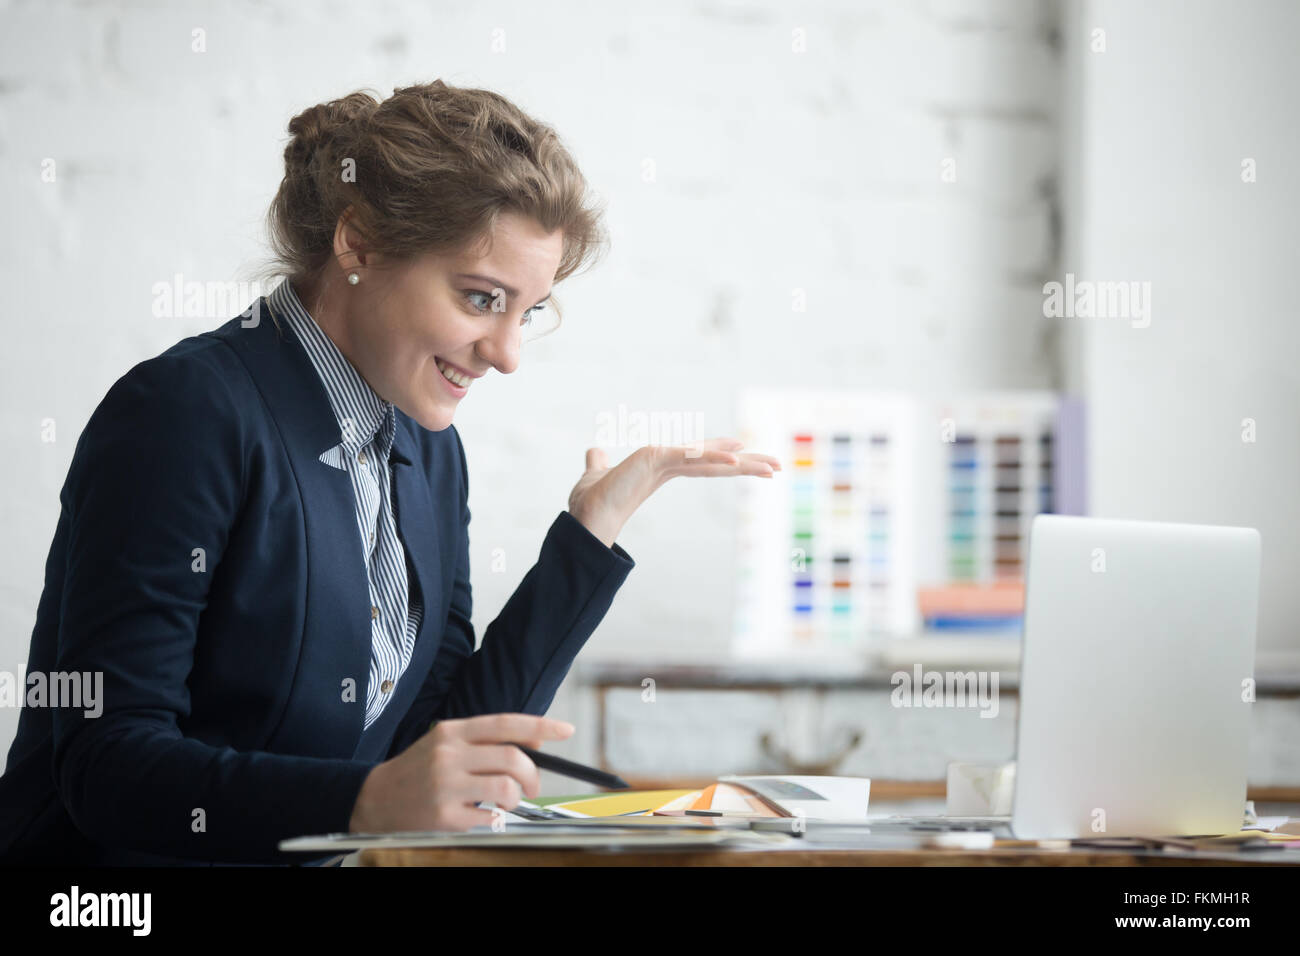 Portrait of young smiling shocked business woman wearing suit sitting at home office desk using laptop, looking - Stock Image